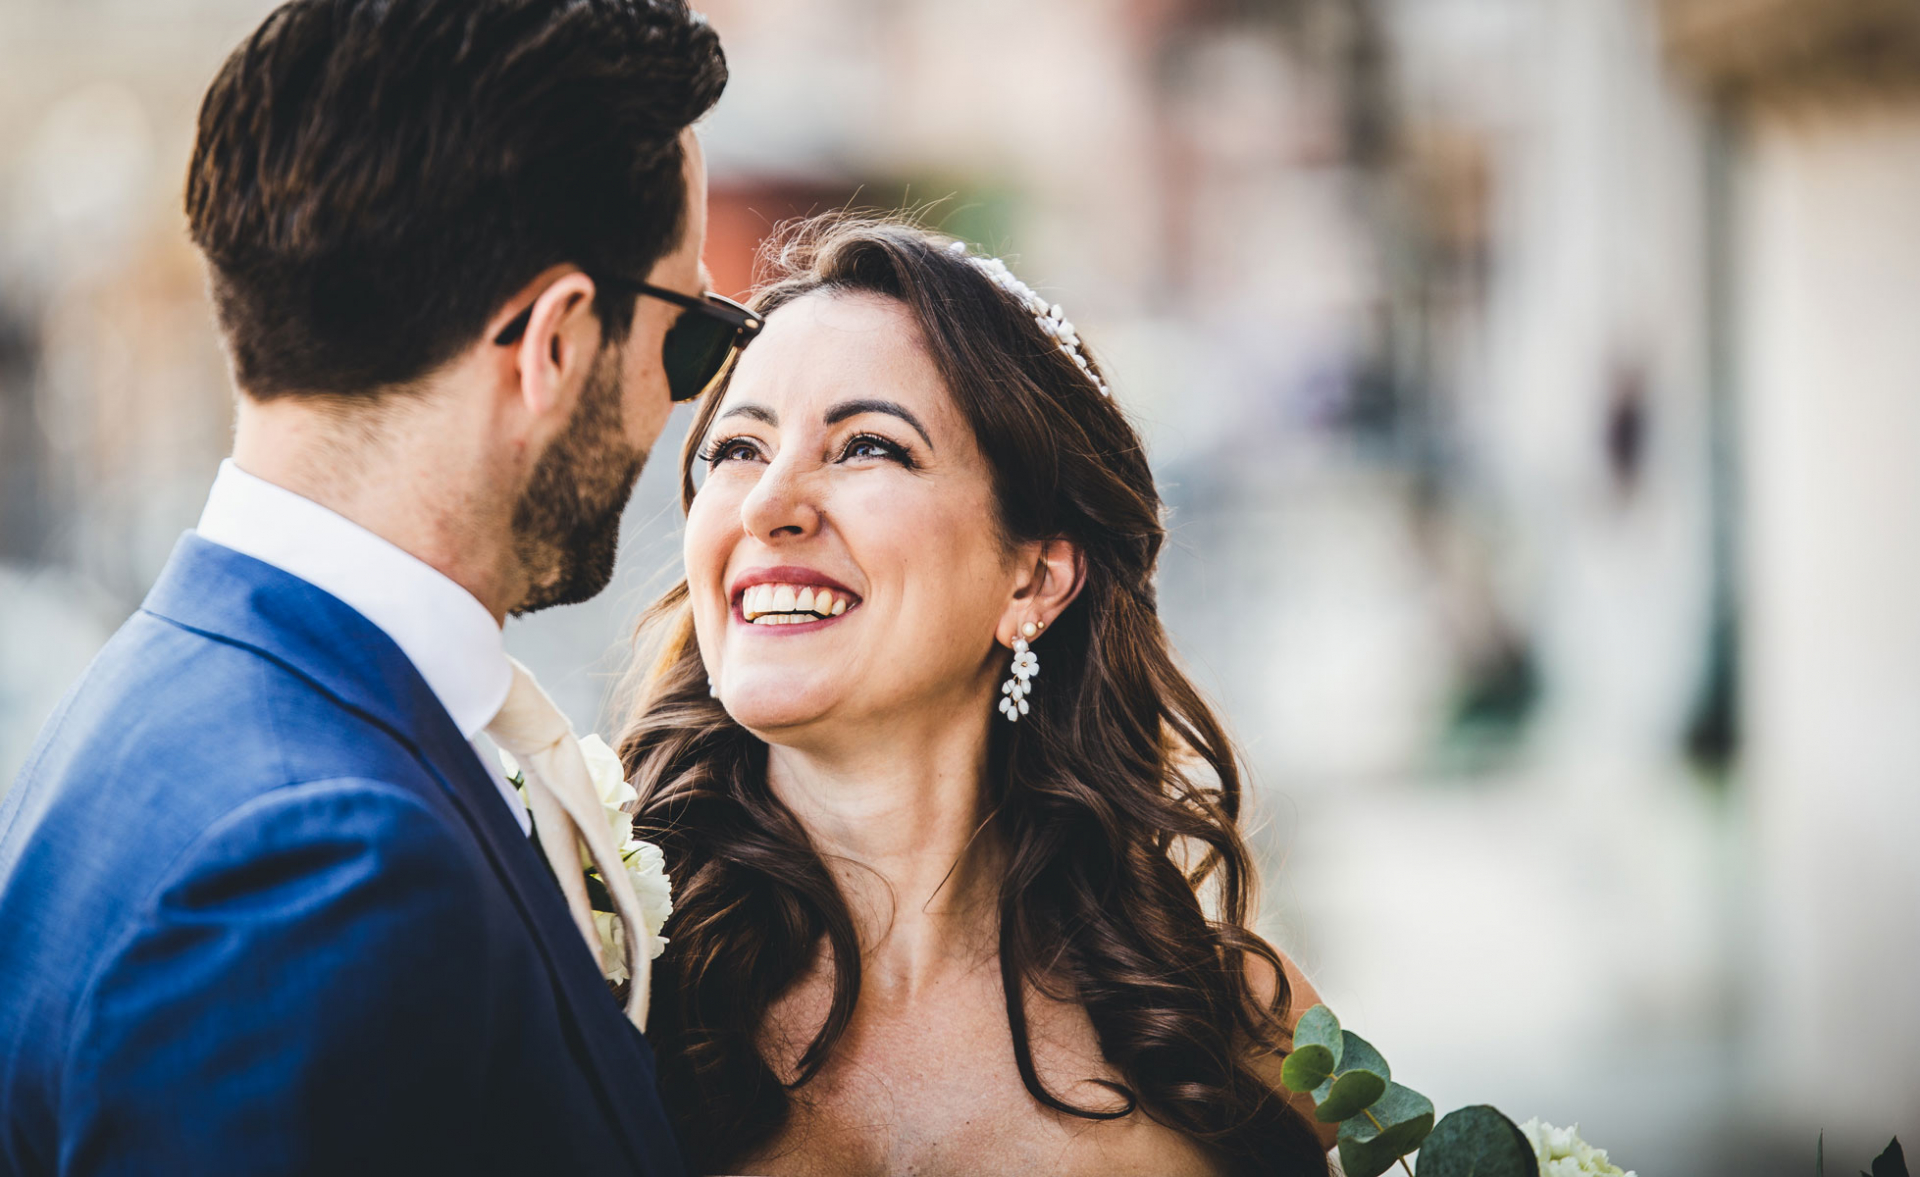 Bauer Palazzo Wedding Image from Venice, Italy | Looking up at the man who will become her husband